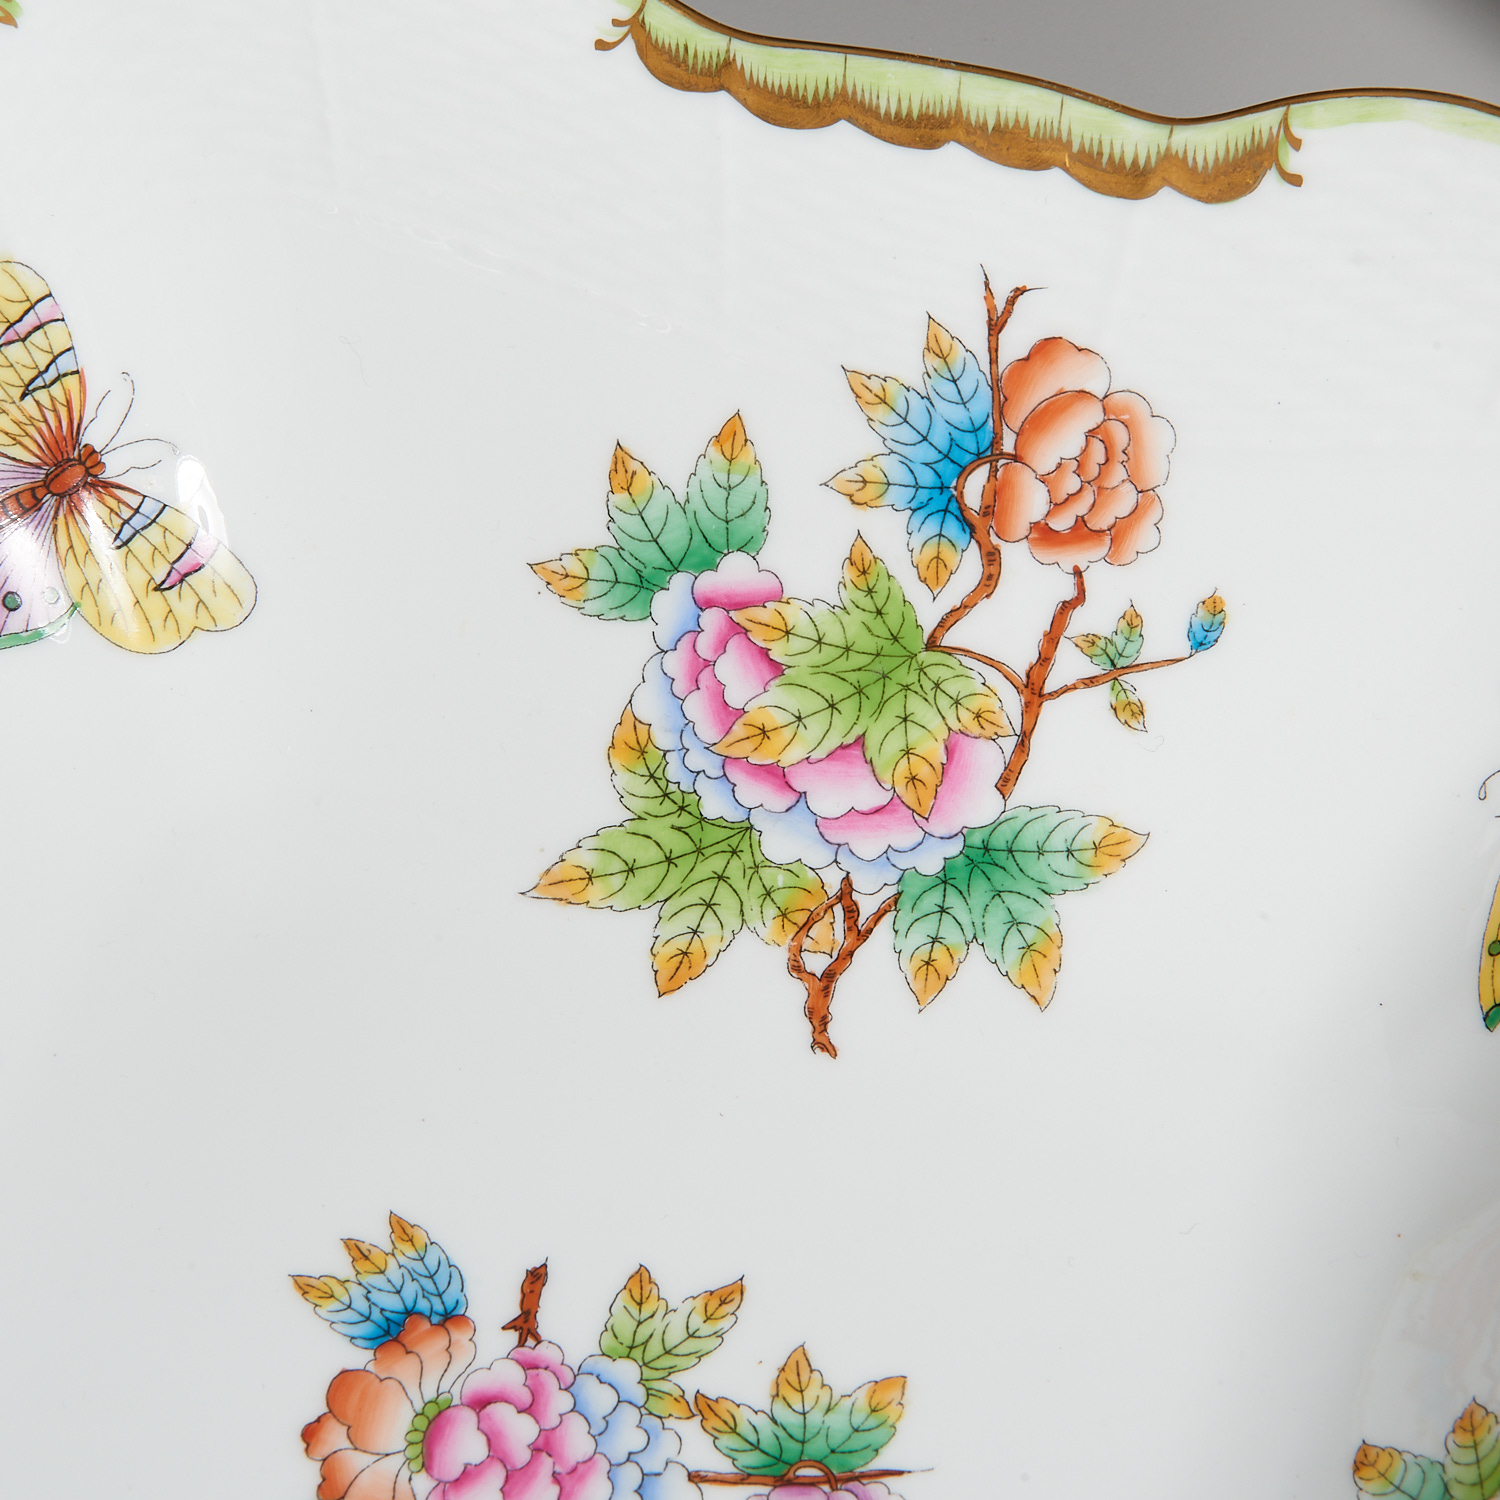 Lot 58 - (15) Herend Porcelain Table Articles